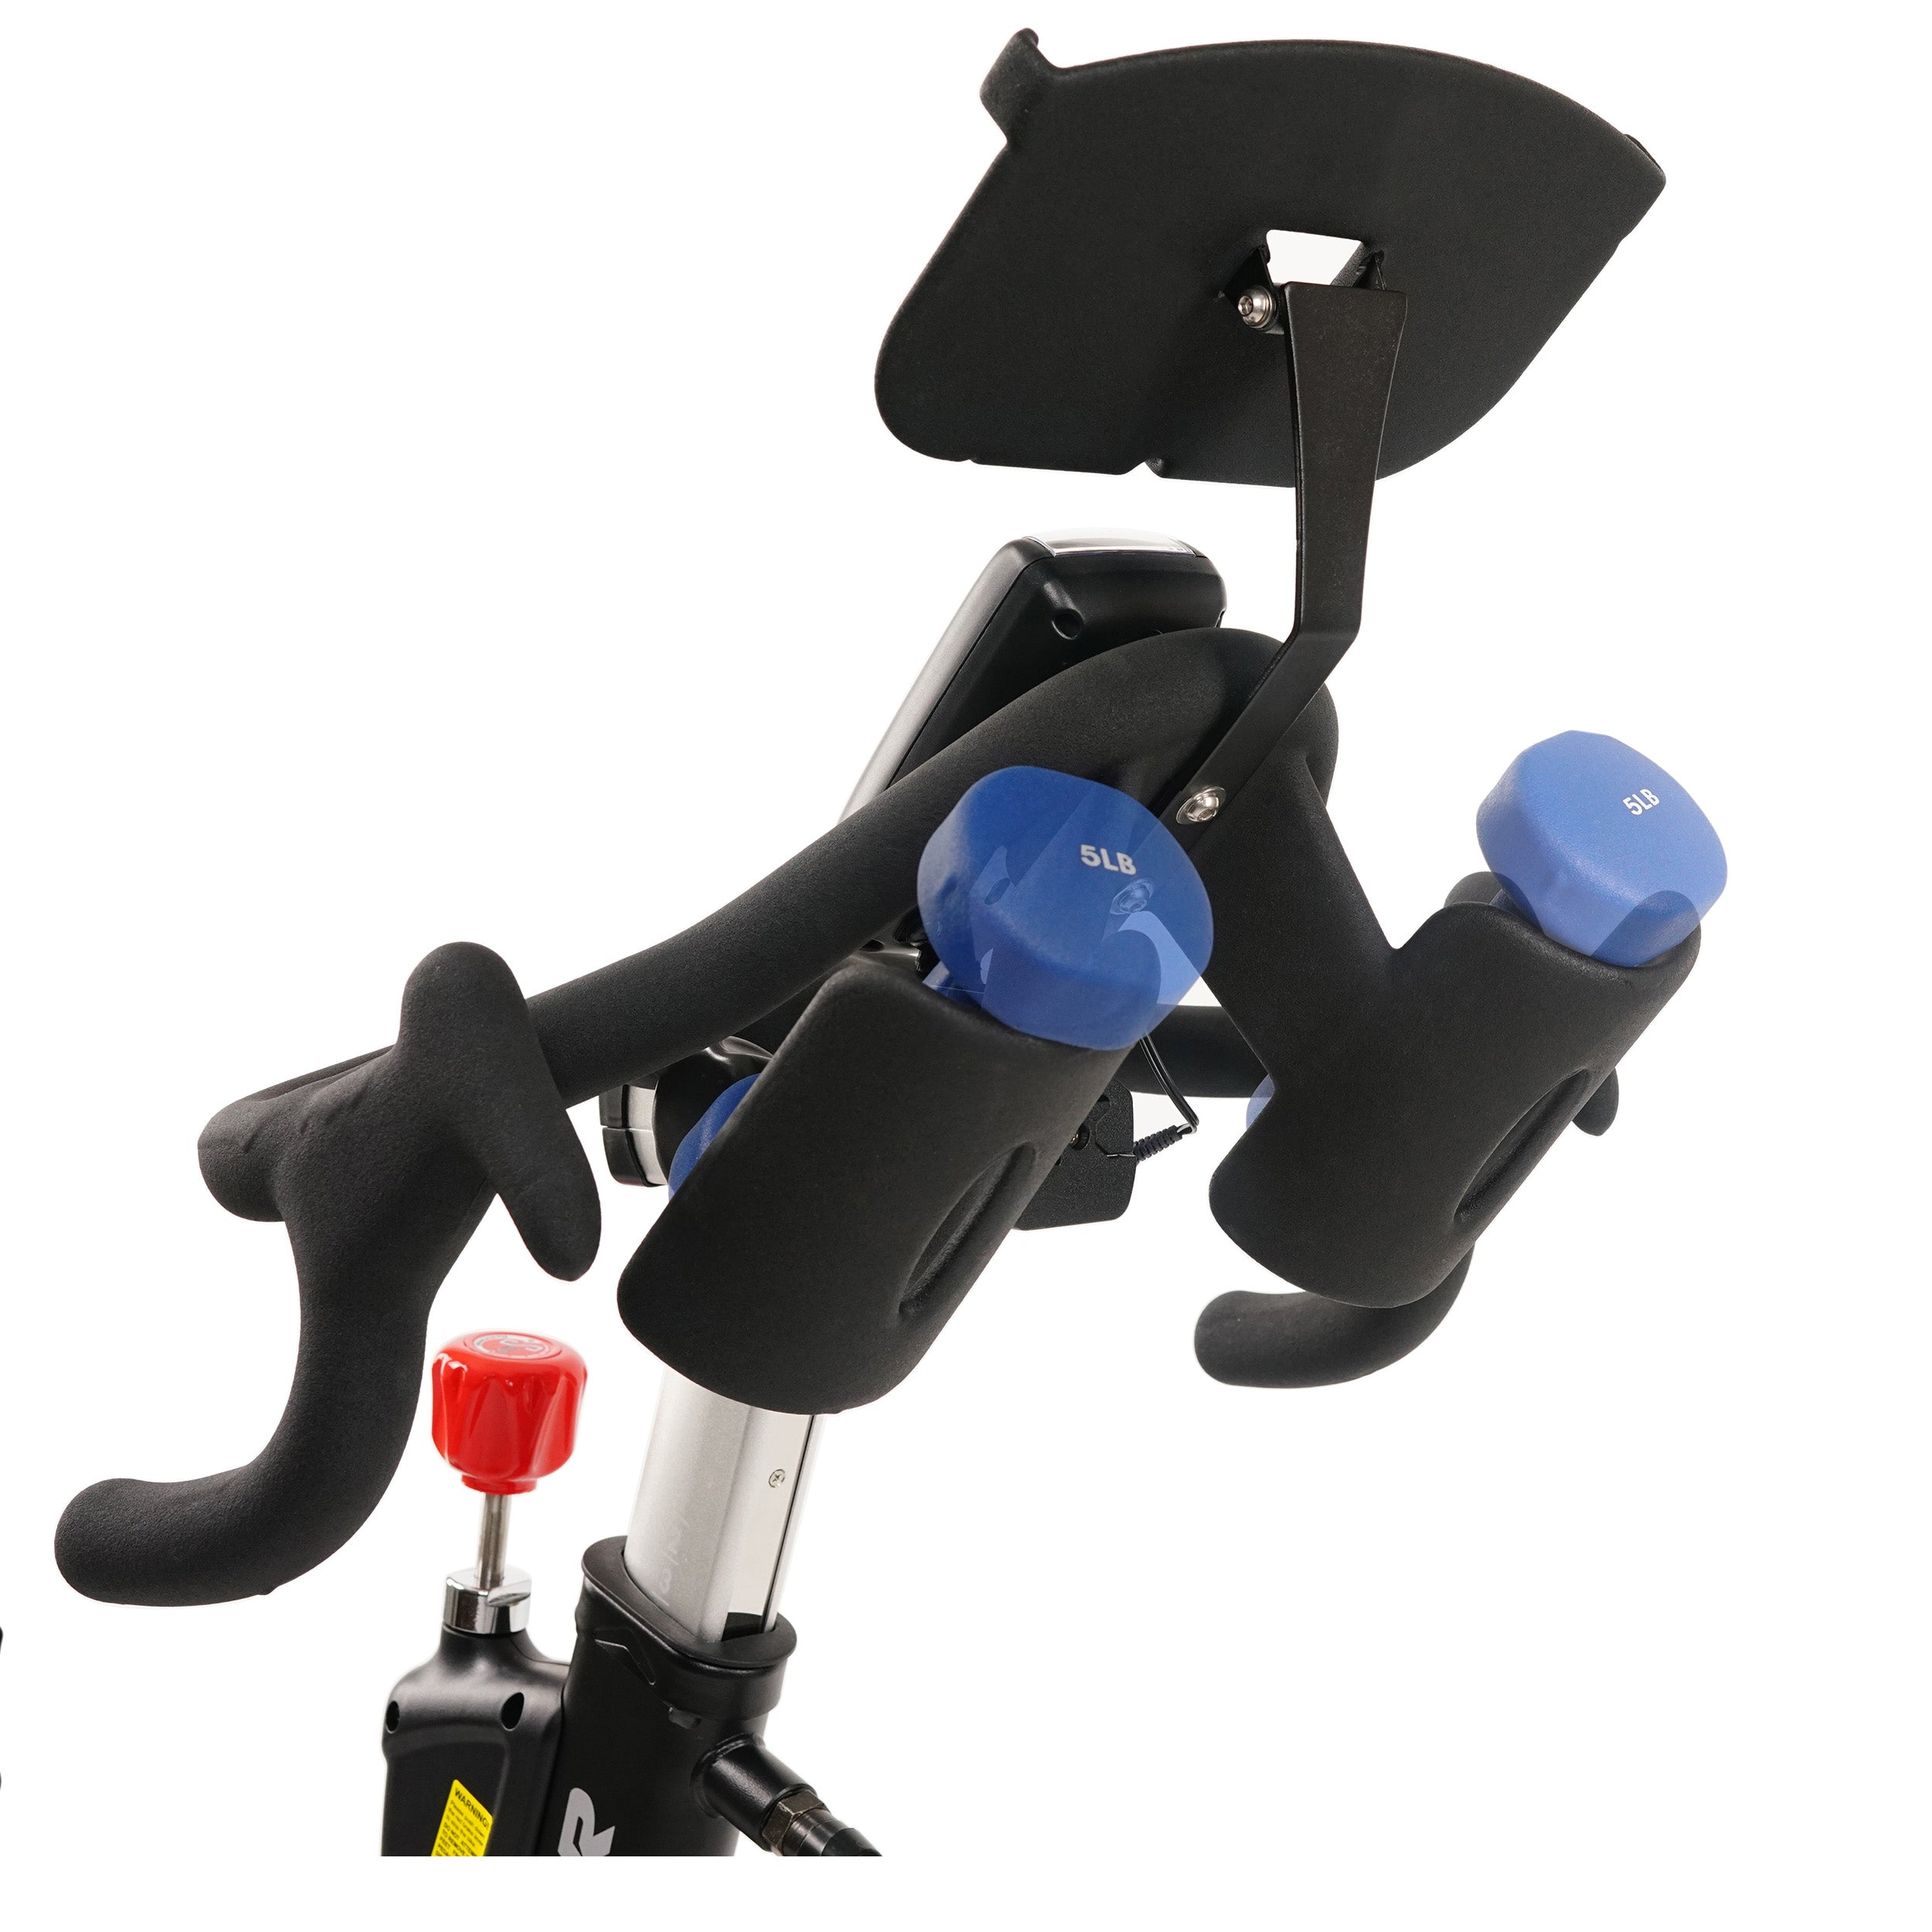 sunny-health-fitness-bikes-sprinter-commercial-indoor-cycling-trainer-6100-bottle-holder